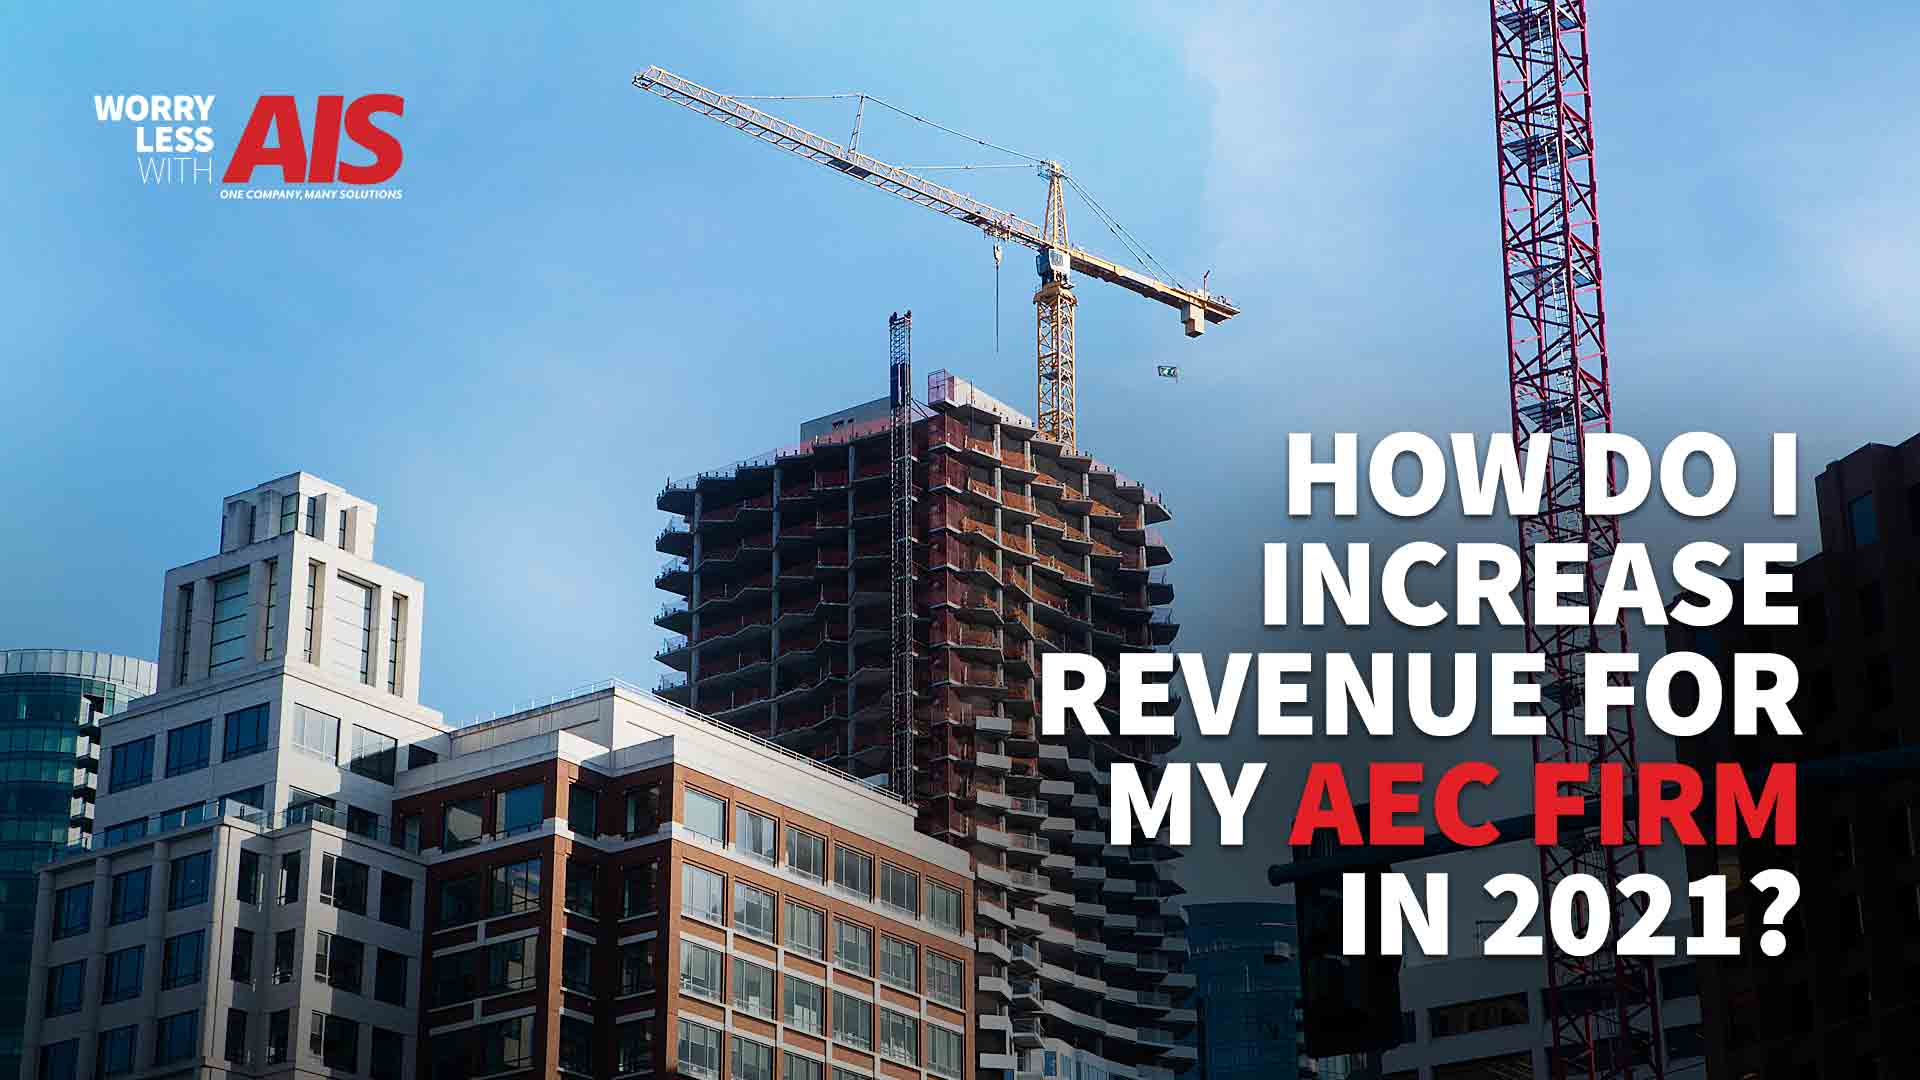 How Do I Increase Revenue For My Architecture and Engineering Firm In 2021?